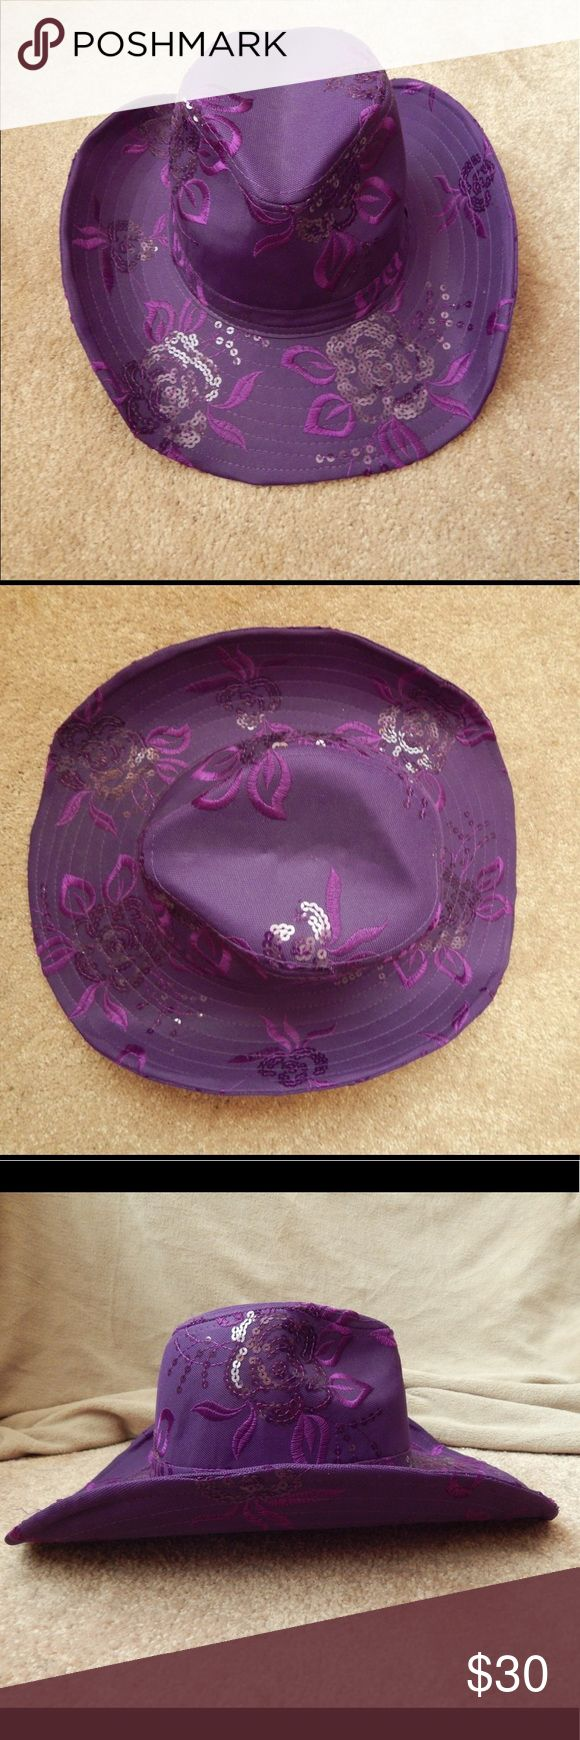 Cowgirl Hat with Sequins and Flower Embroidery Purple cowgirl hat with sequins and flower embroidery. Worn only once. Wire rim for adjusting shape. A beautiful addition to a flannel and jeans or a simple summer sun dress. Accessories Hats